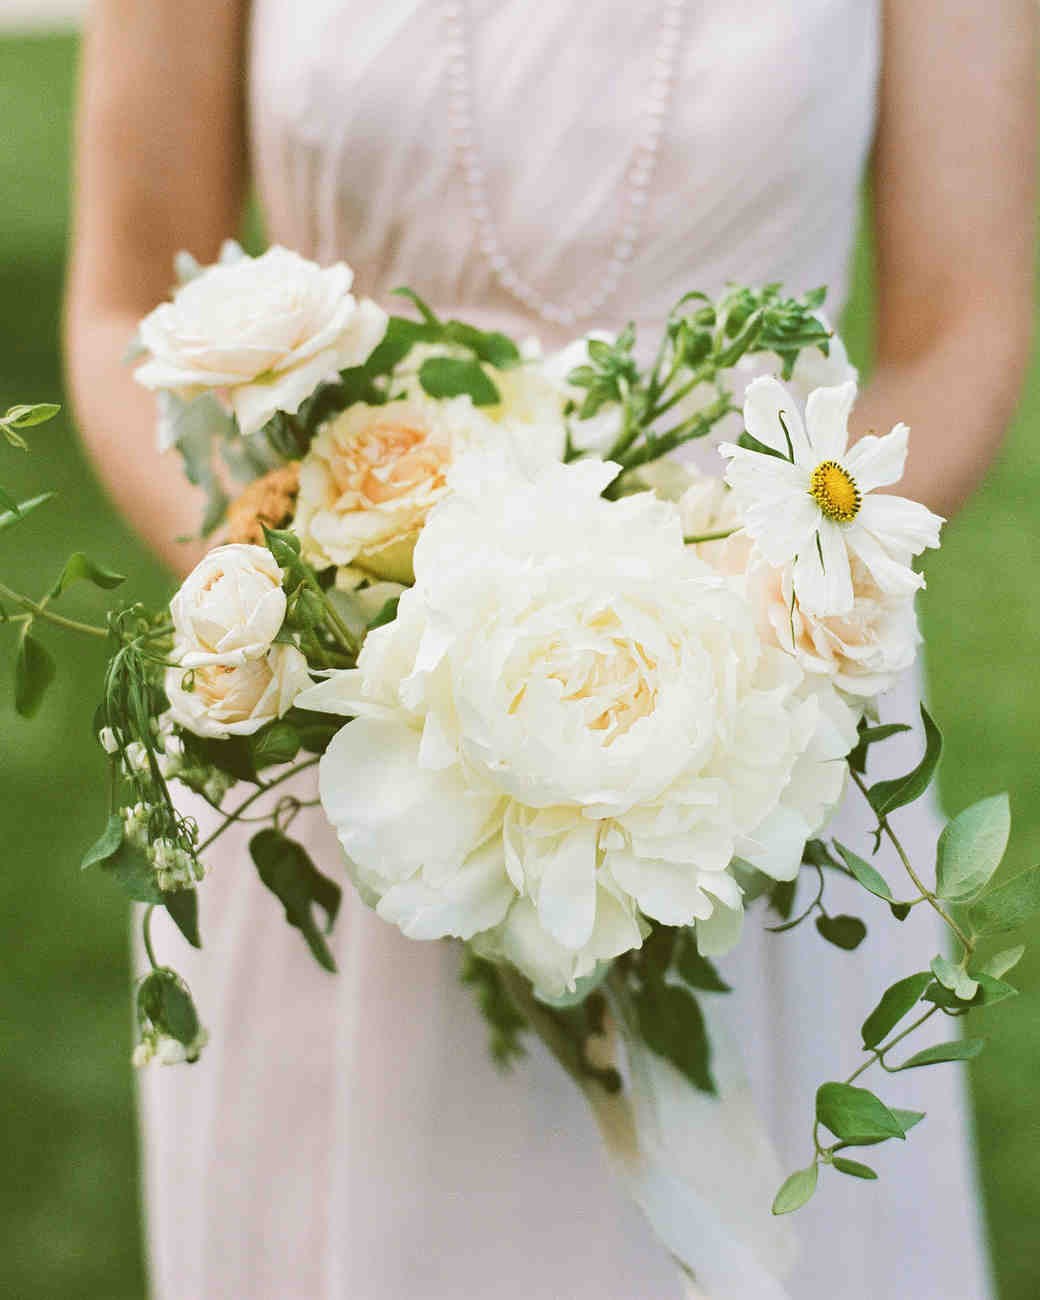 Make Silk Wedding Bouquets. Bokeh Flowers Wedding How To Make A Diy ...